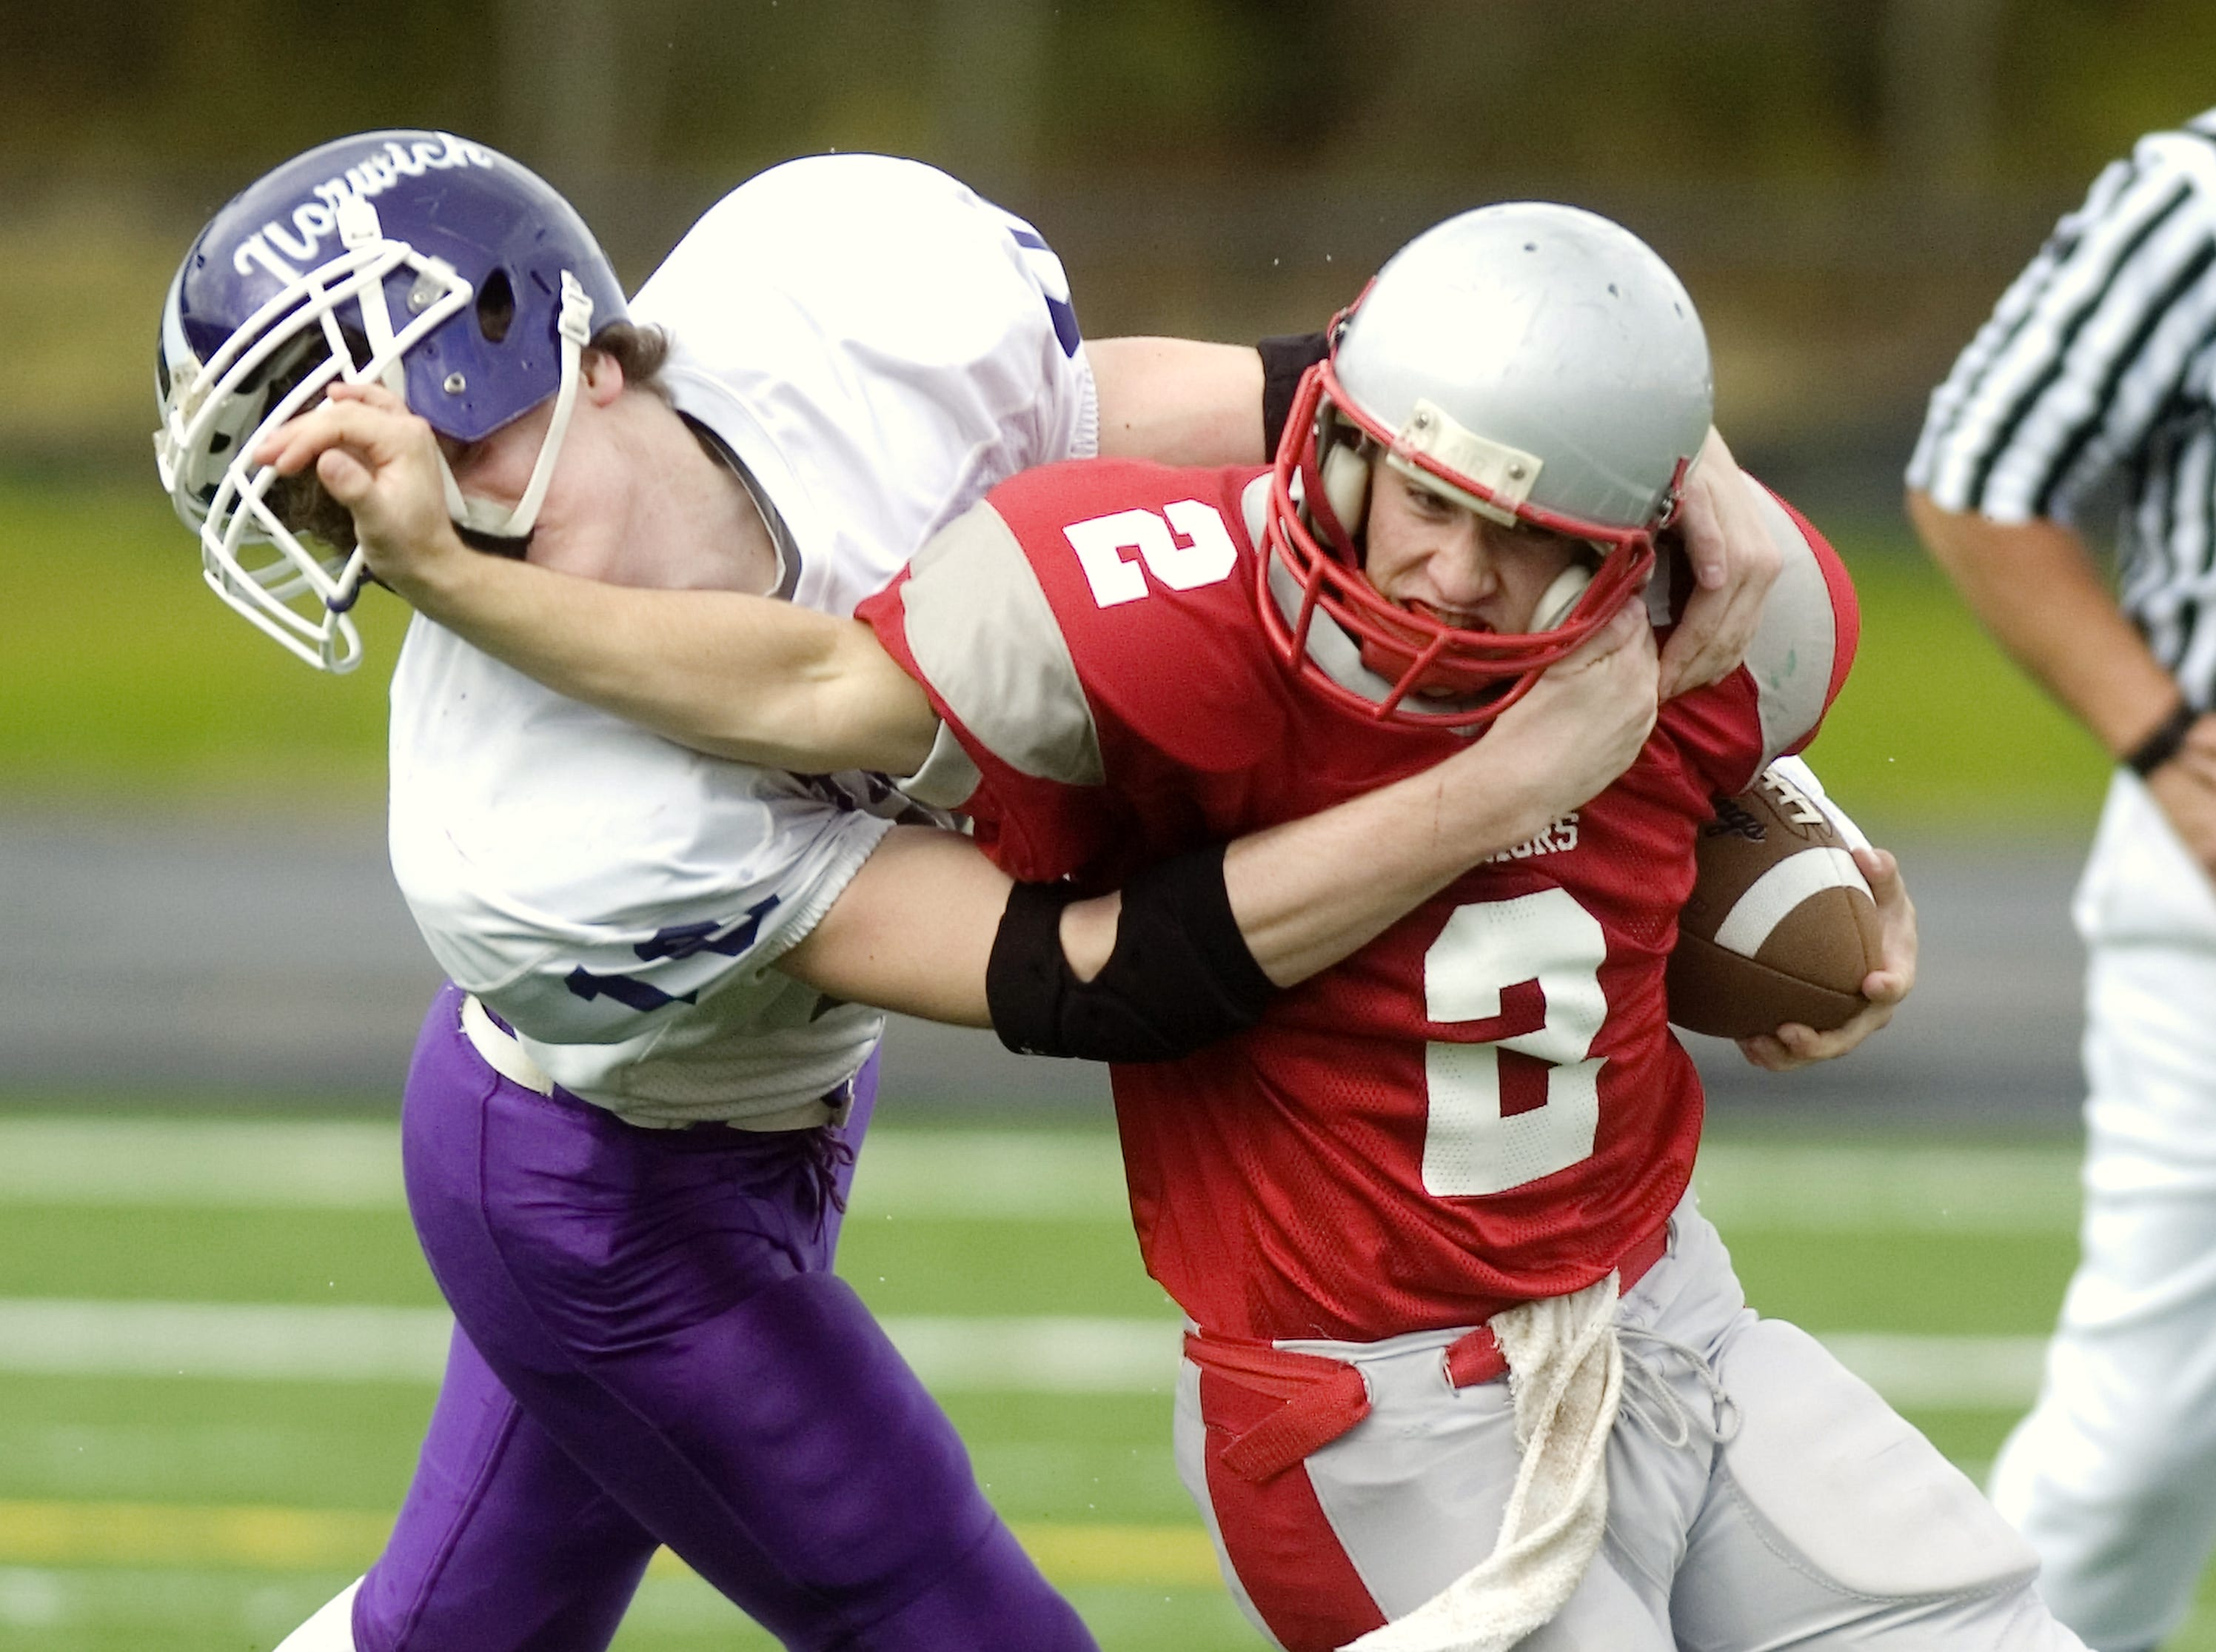 From 2009: Norwich's Morgan Cleveland, left, tries to take down Chenango Valley's Ricky Ruffo in the first quarter of Saturday's game at Greene.